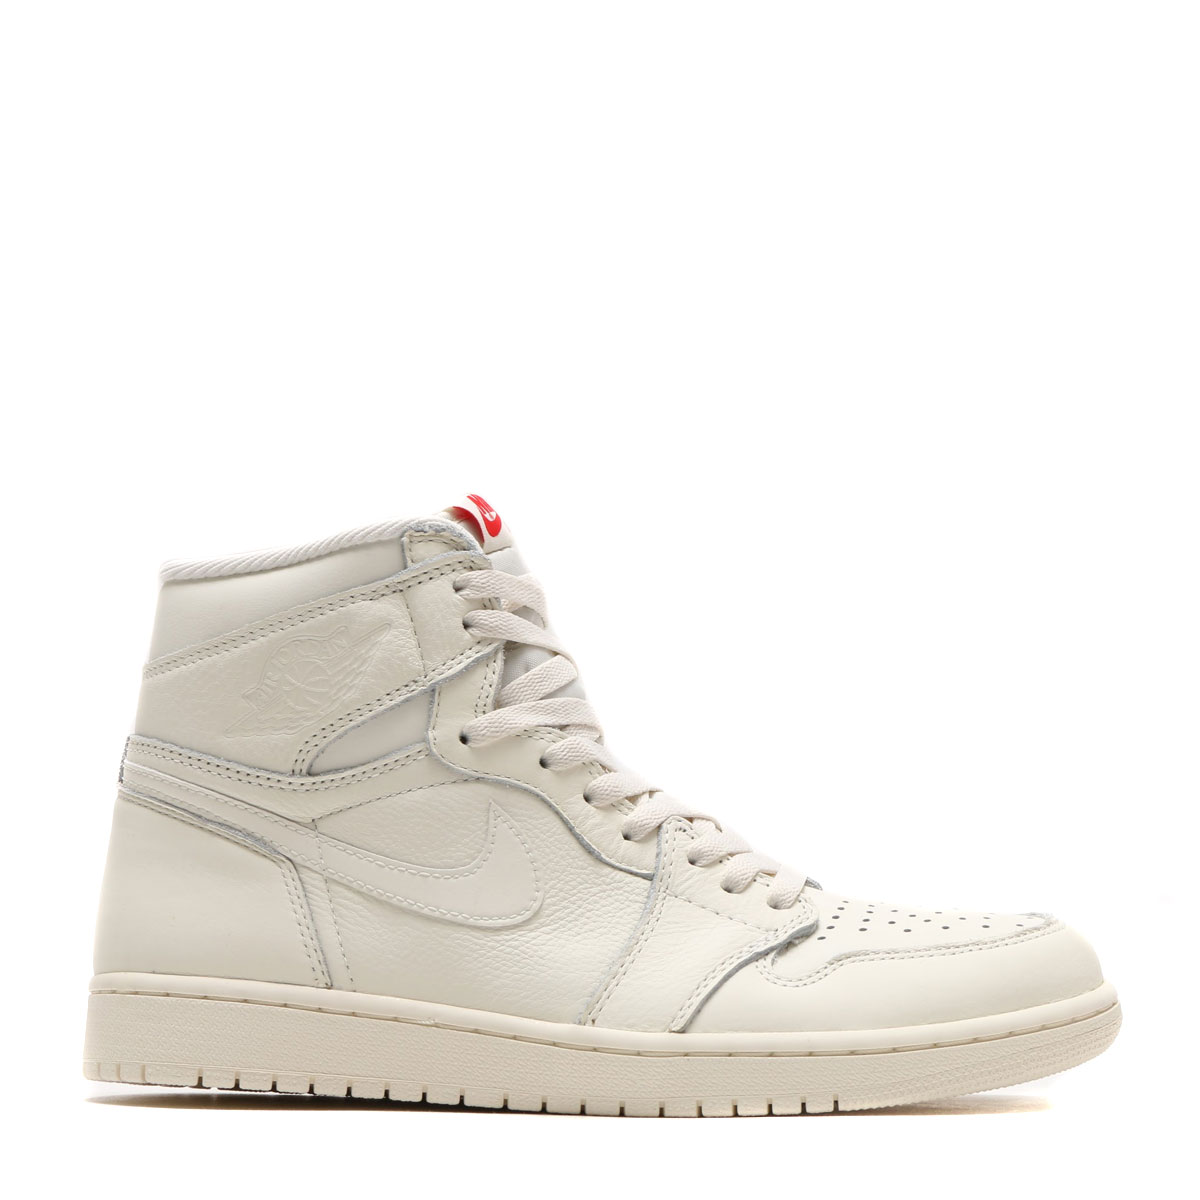 NIKE AIR JORDAN 1 RETRO HIGH OG (Nike Air Jordan 1 nostalgic high OG) (SAIL/UNIVERSITY RED) 17FA-I